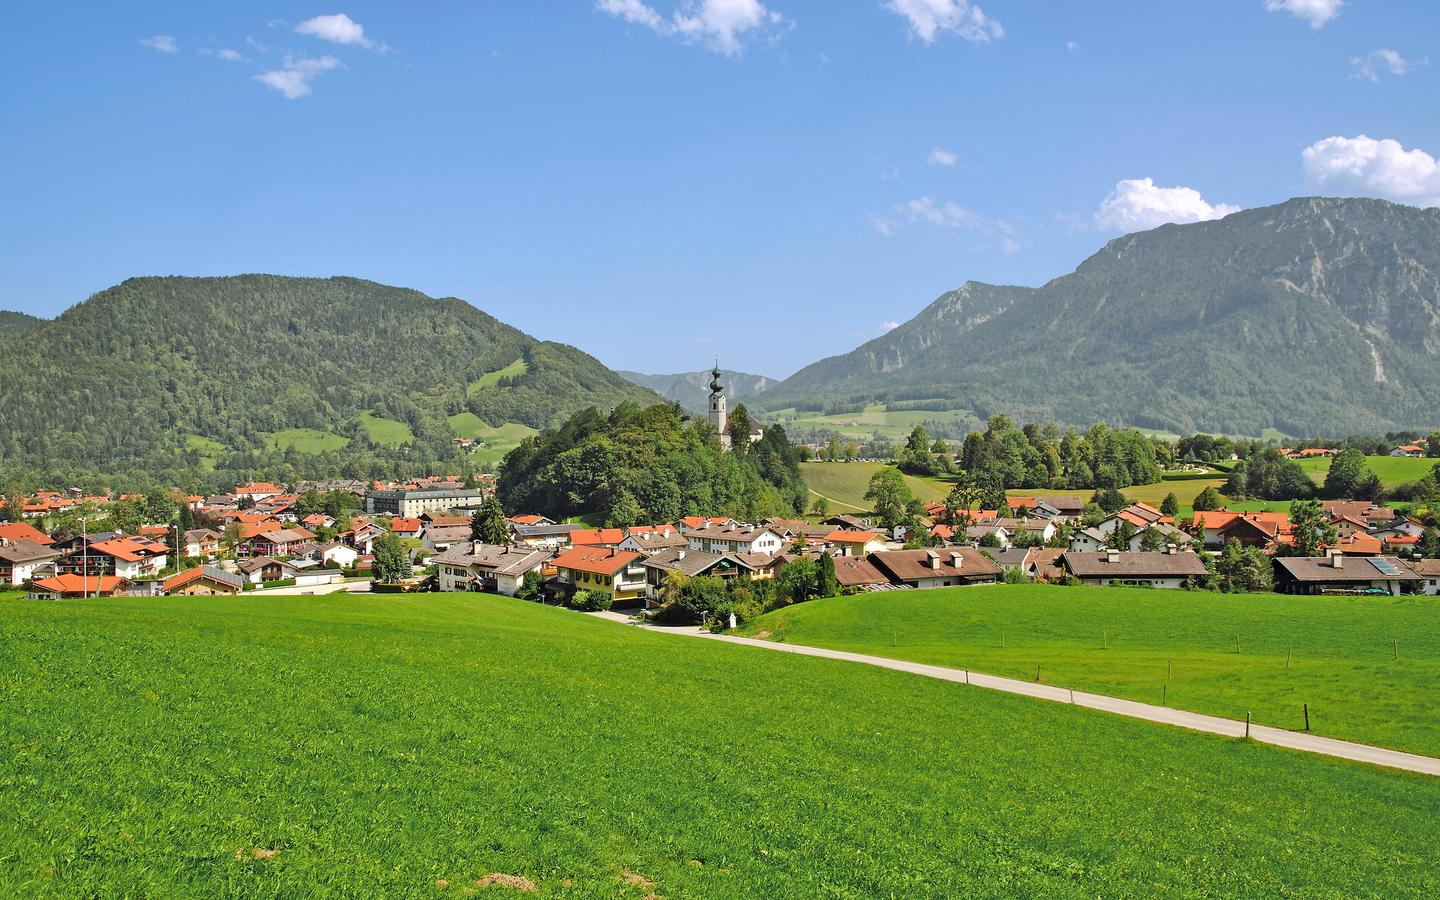 Hotels in Ruhpolding